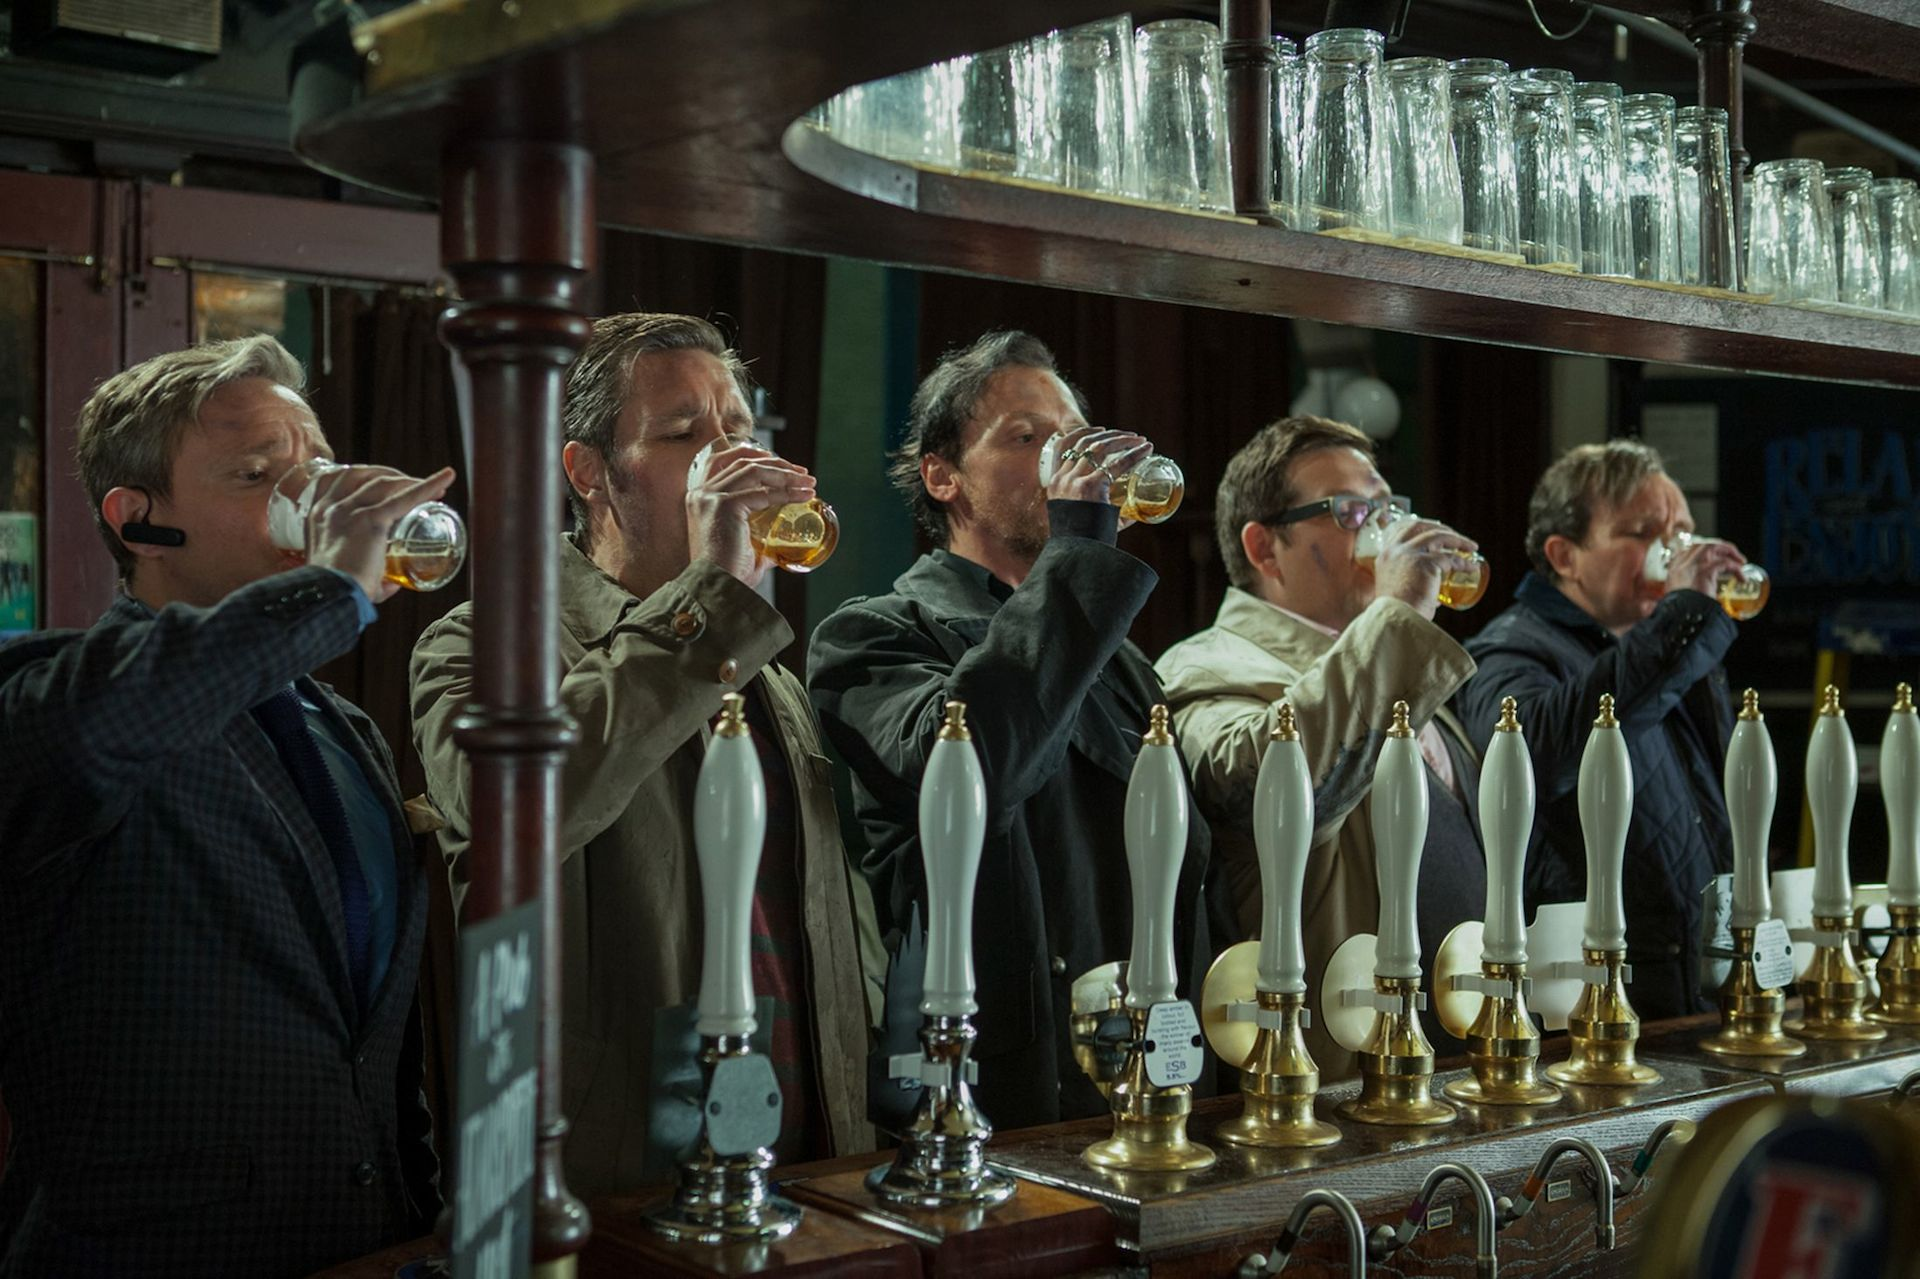 The World's End - Martin Freeman, Paddy Considine, Simon Pegg, Nick Frost, Eddie Marsan - beer